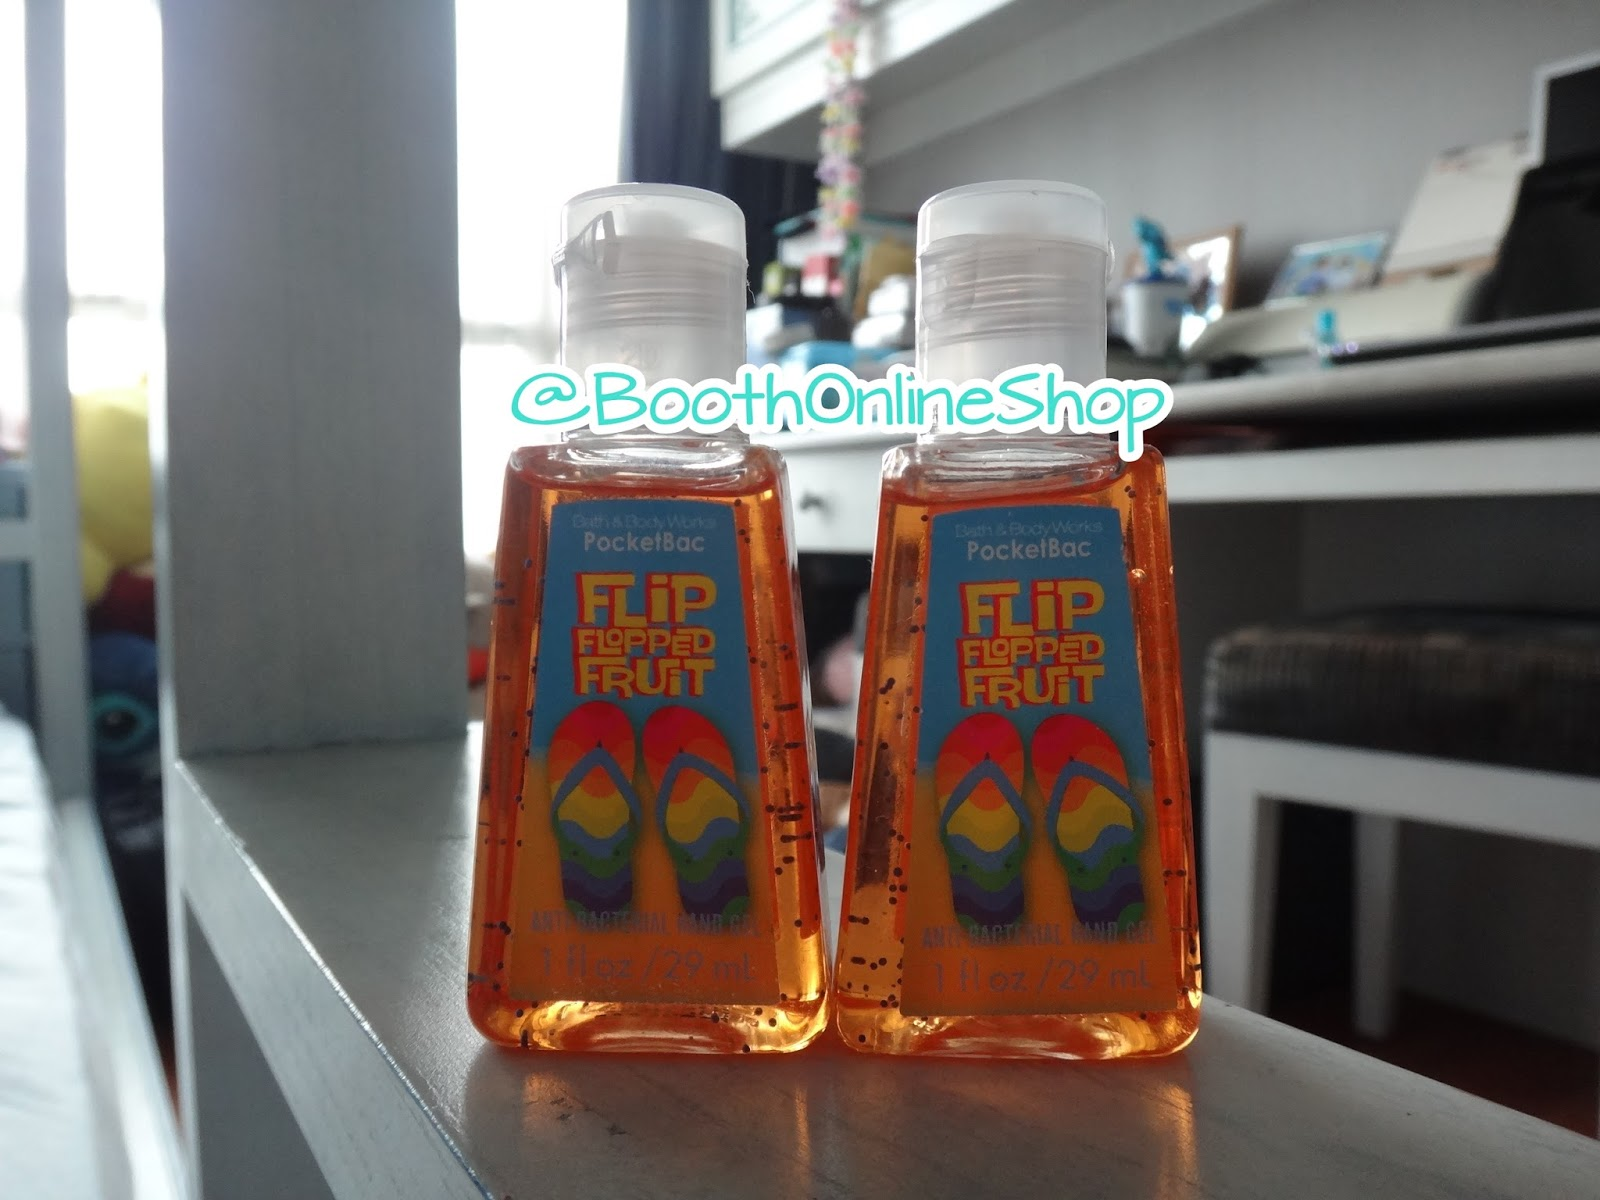 Booth Online Shop Jual Rare Pocketbac Bath And Body Works